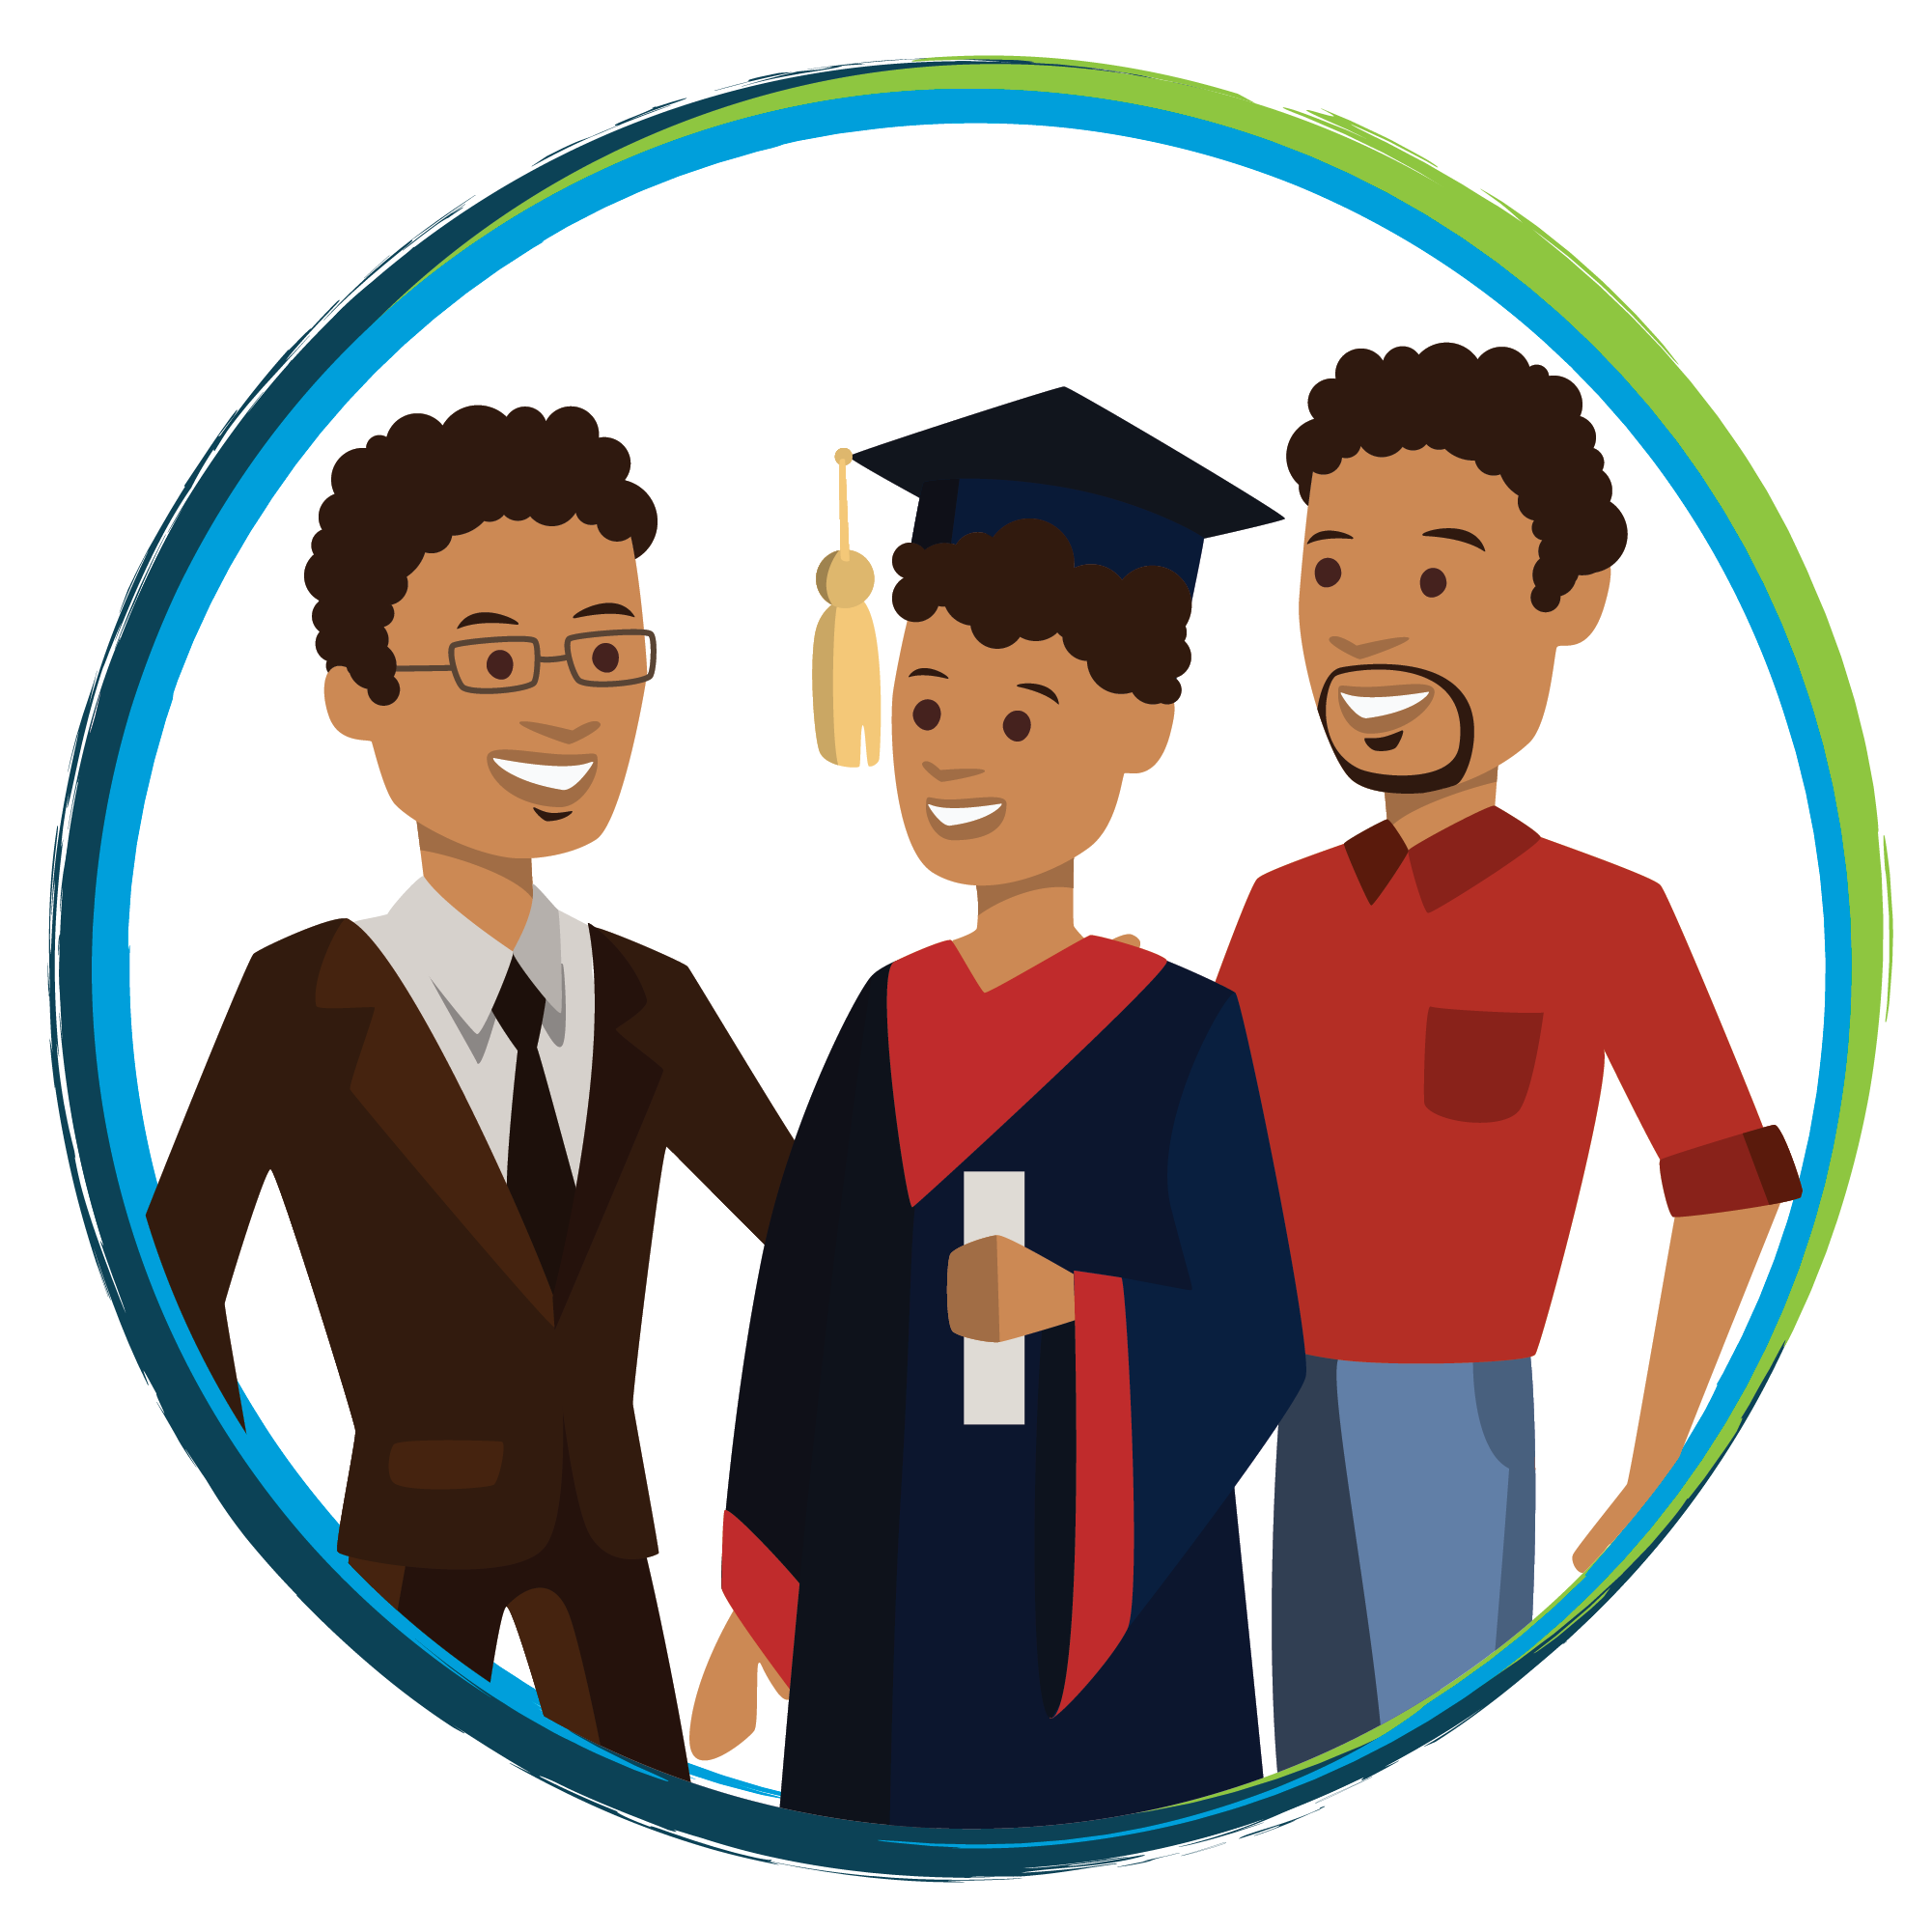 illustration of coach and mentor with mentee graduate